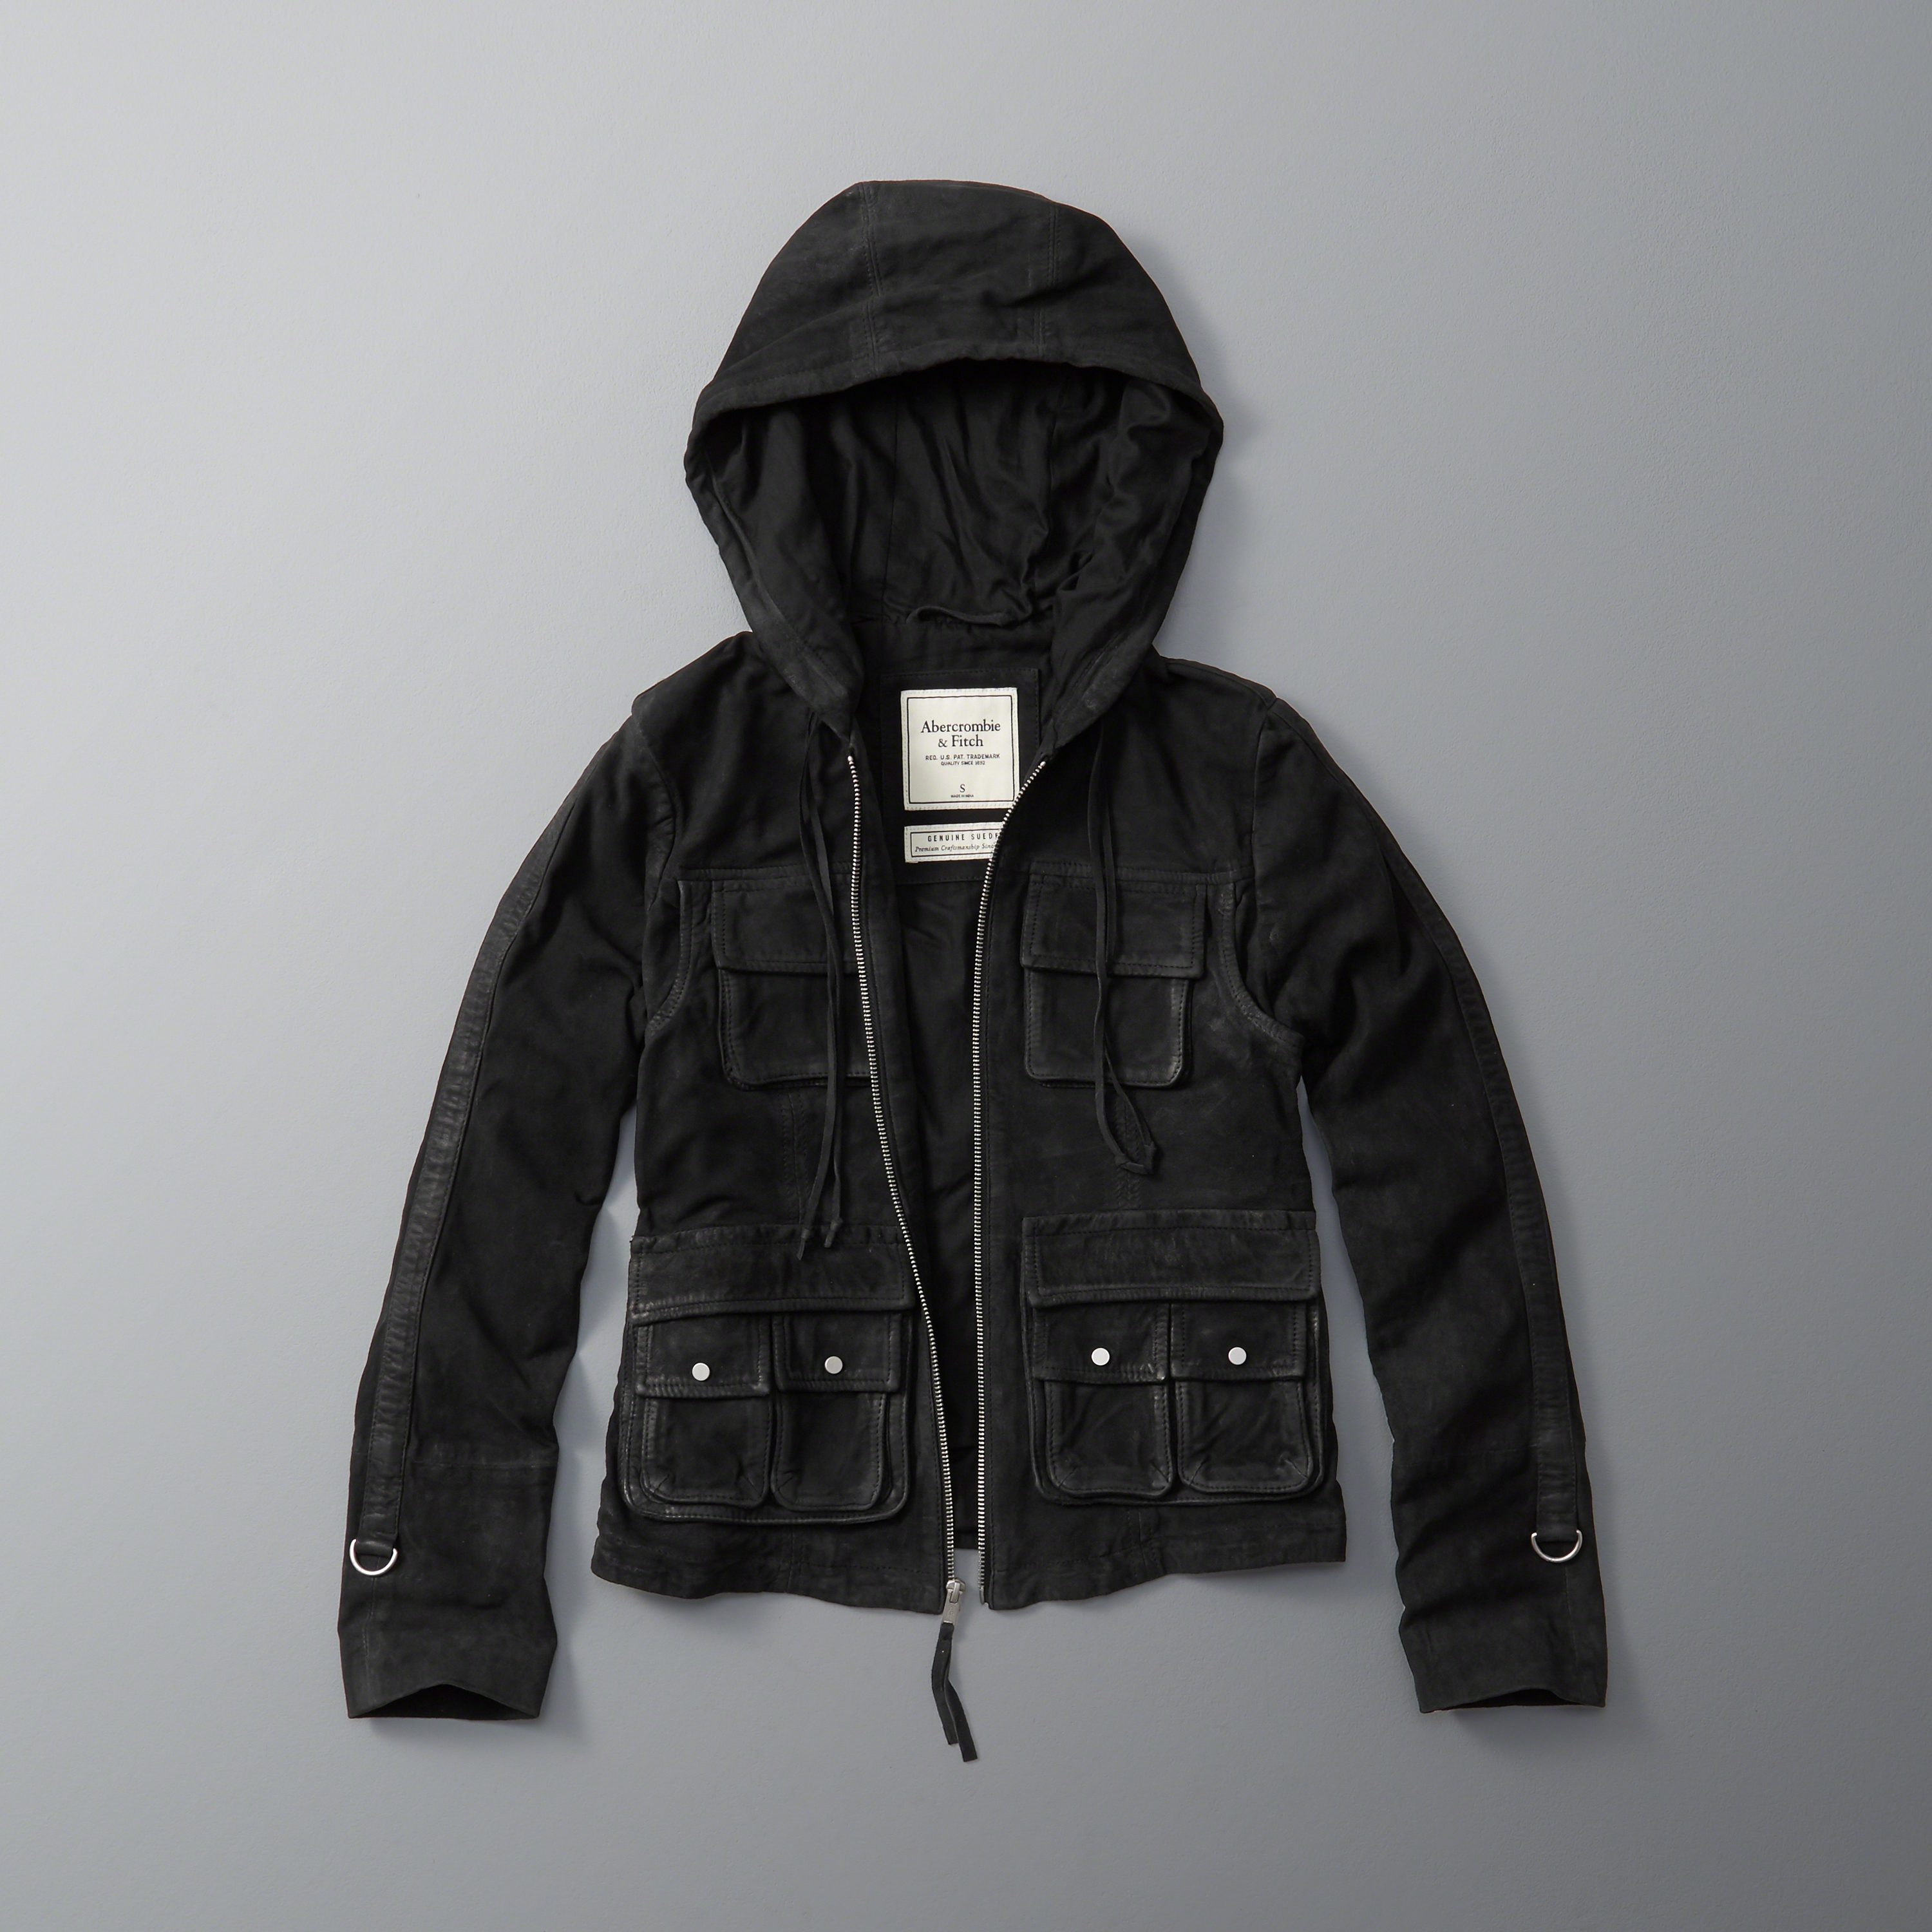 Abercrombie Fitch Accessories Abercrombie Fitch Womens: Abercrombie & Fitch Suede Utility Jacket In Black